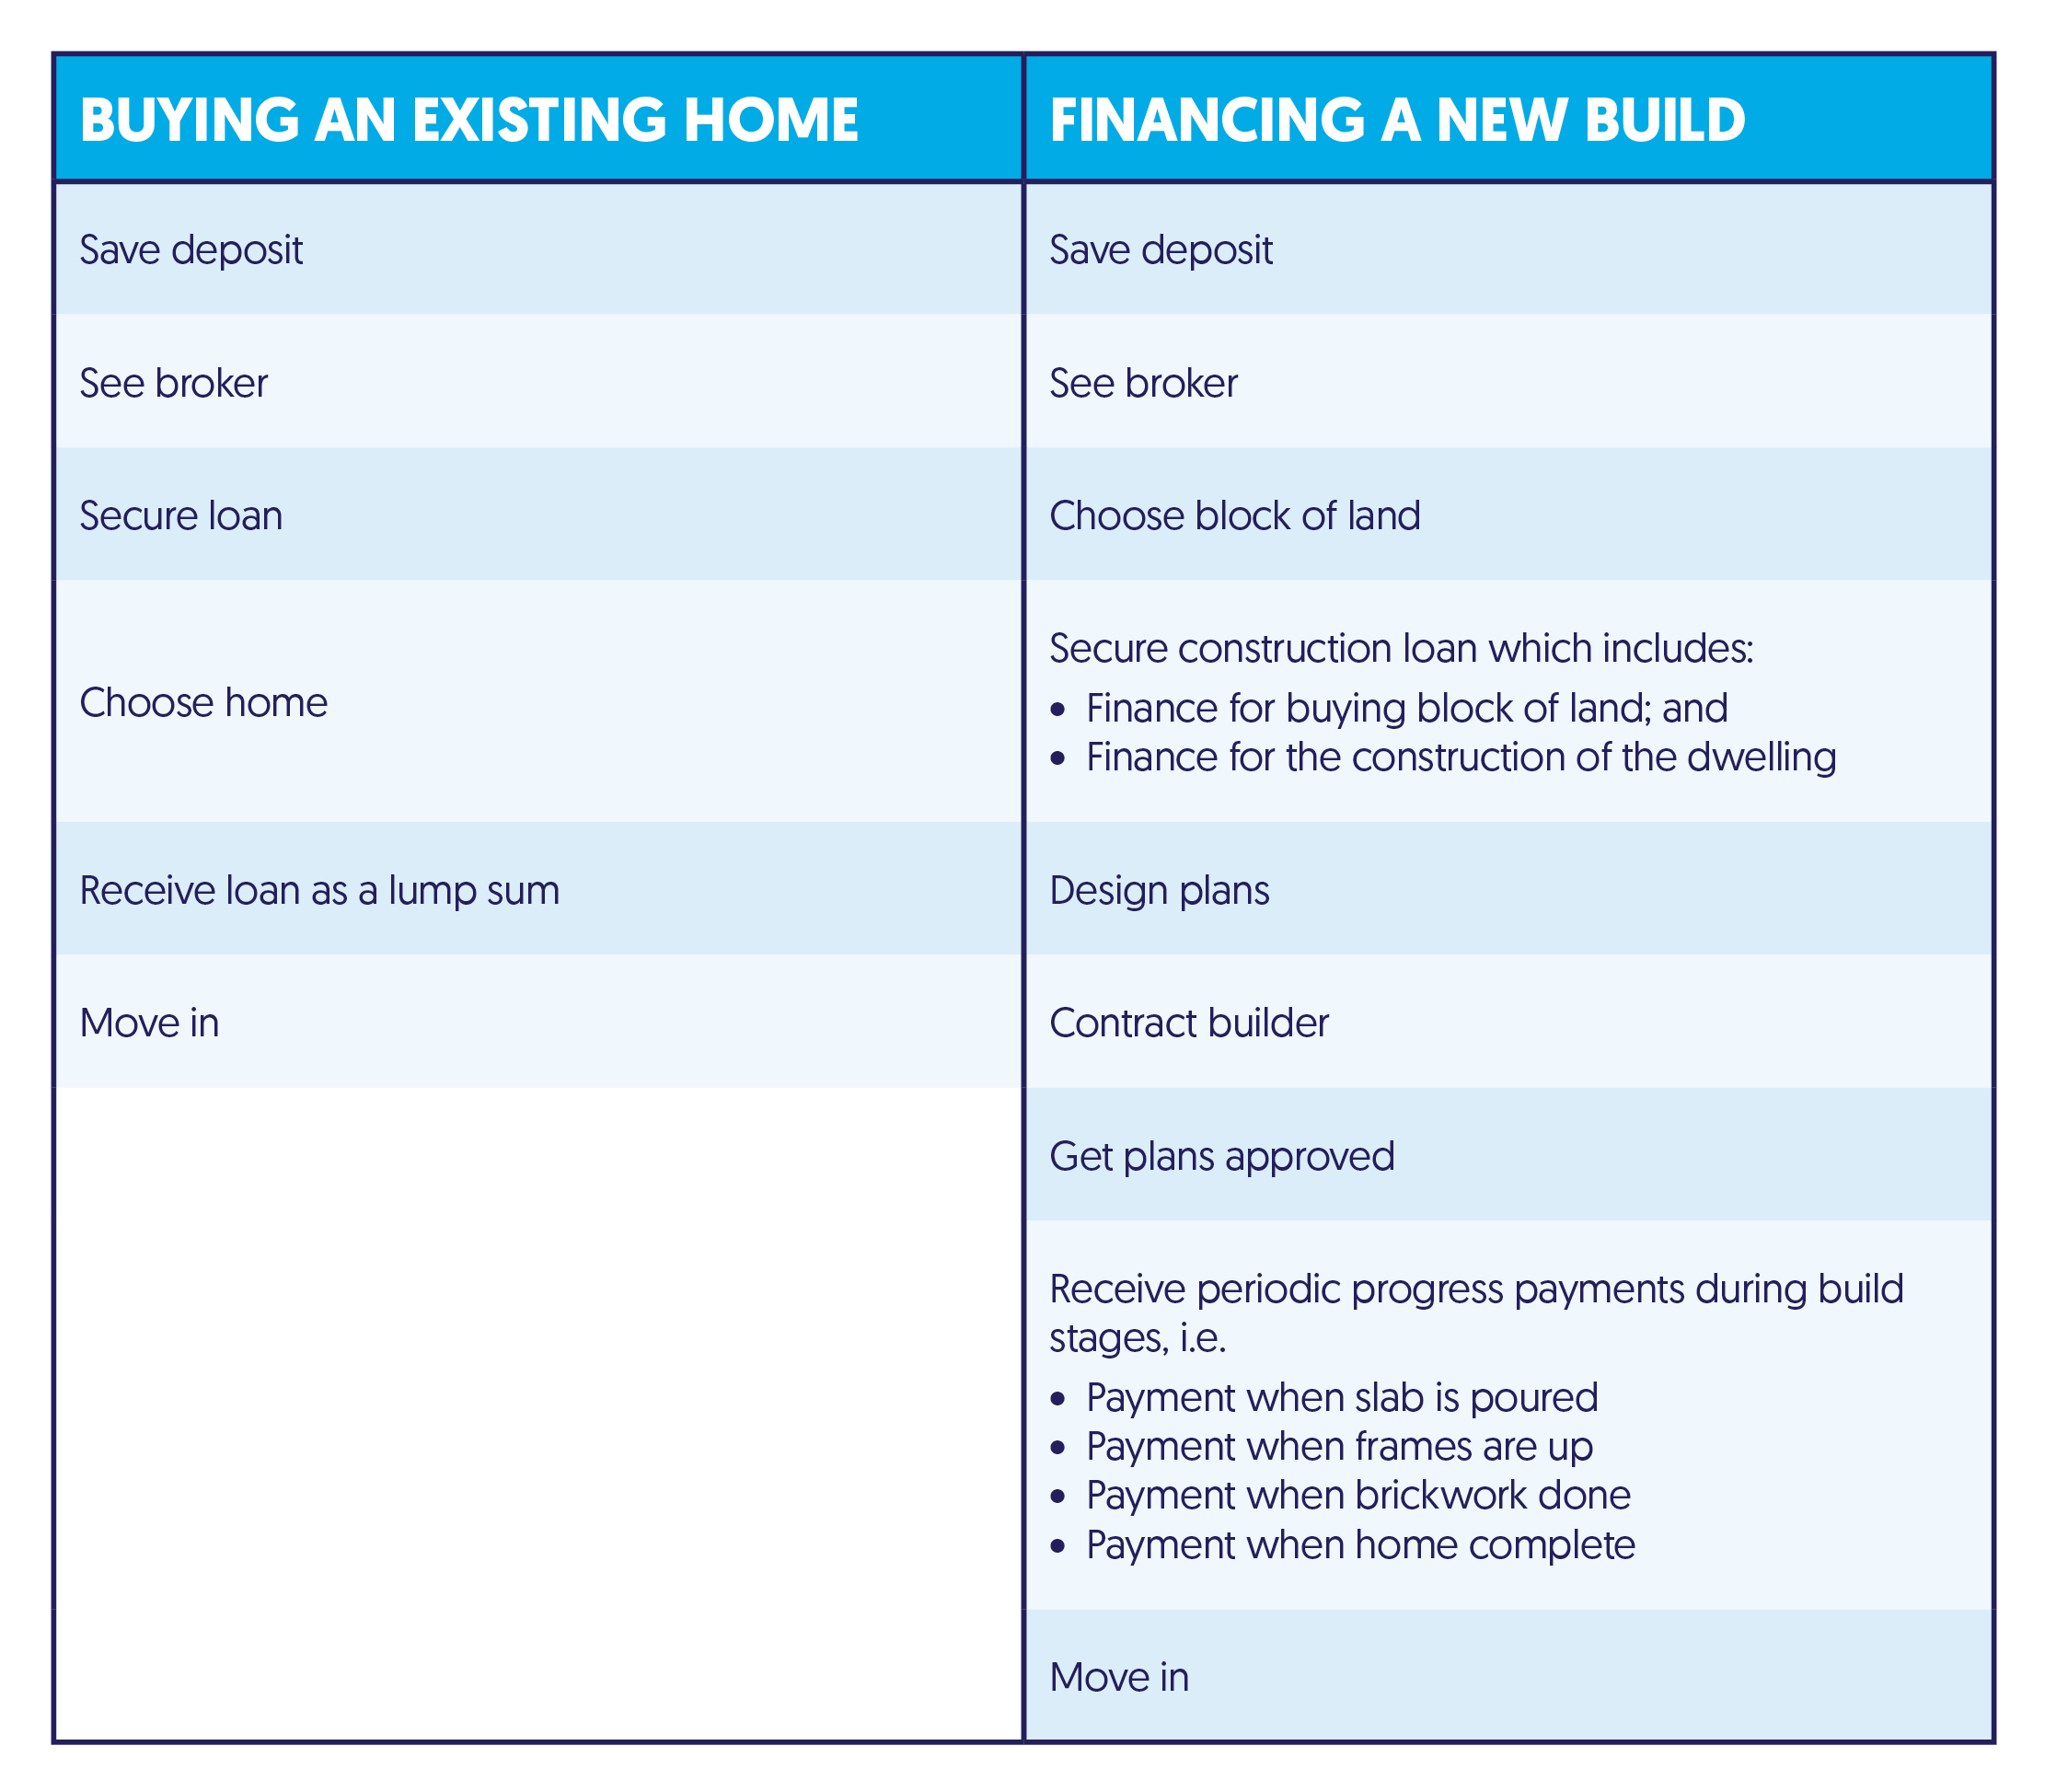 Building A Home Requires A Special Type Of Loan Cara Haynes